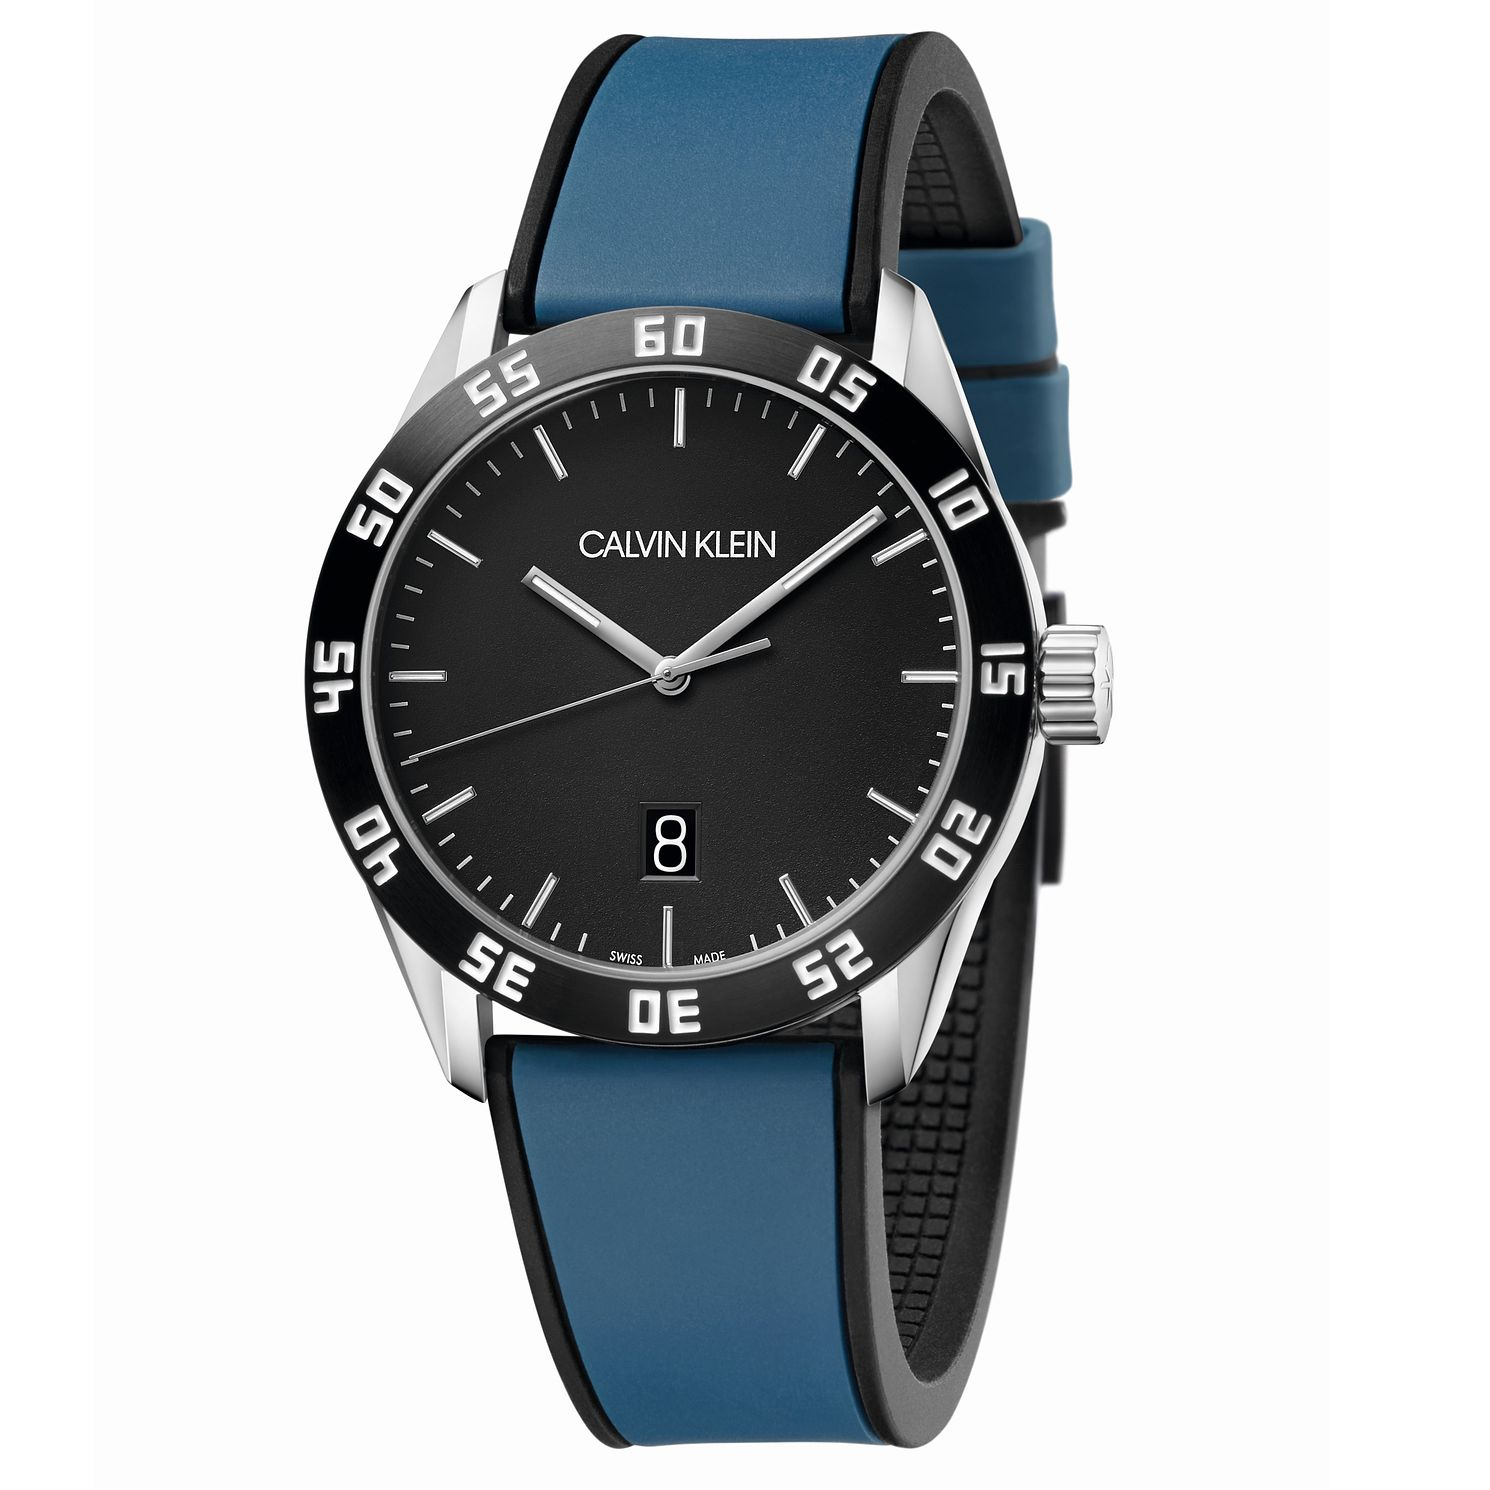 Calvin Klein Men's Blue Silicone Strap Watch - Product number 2471515